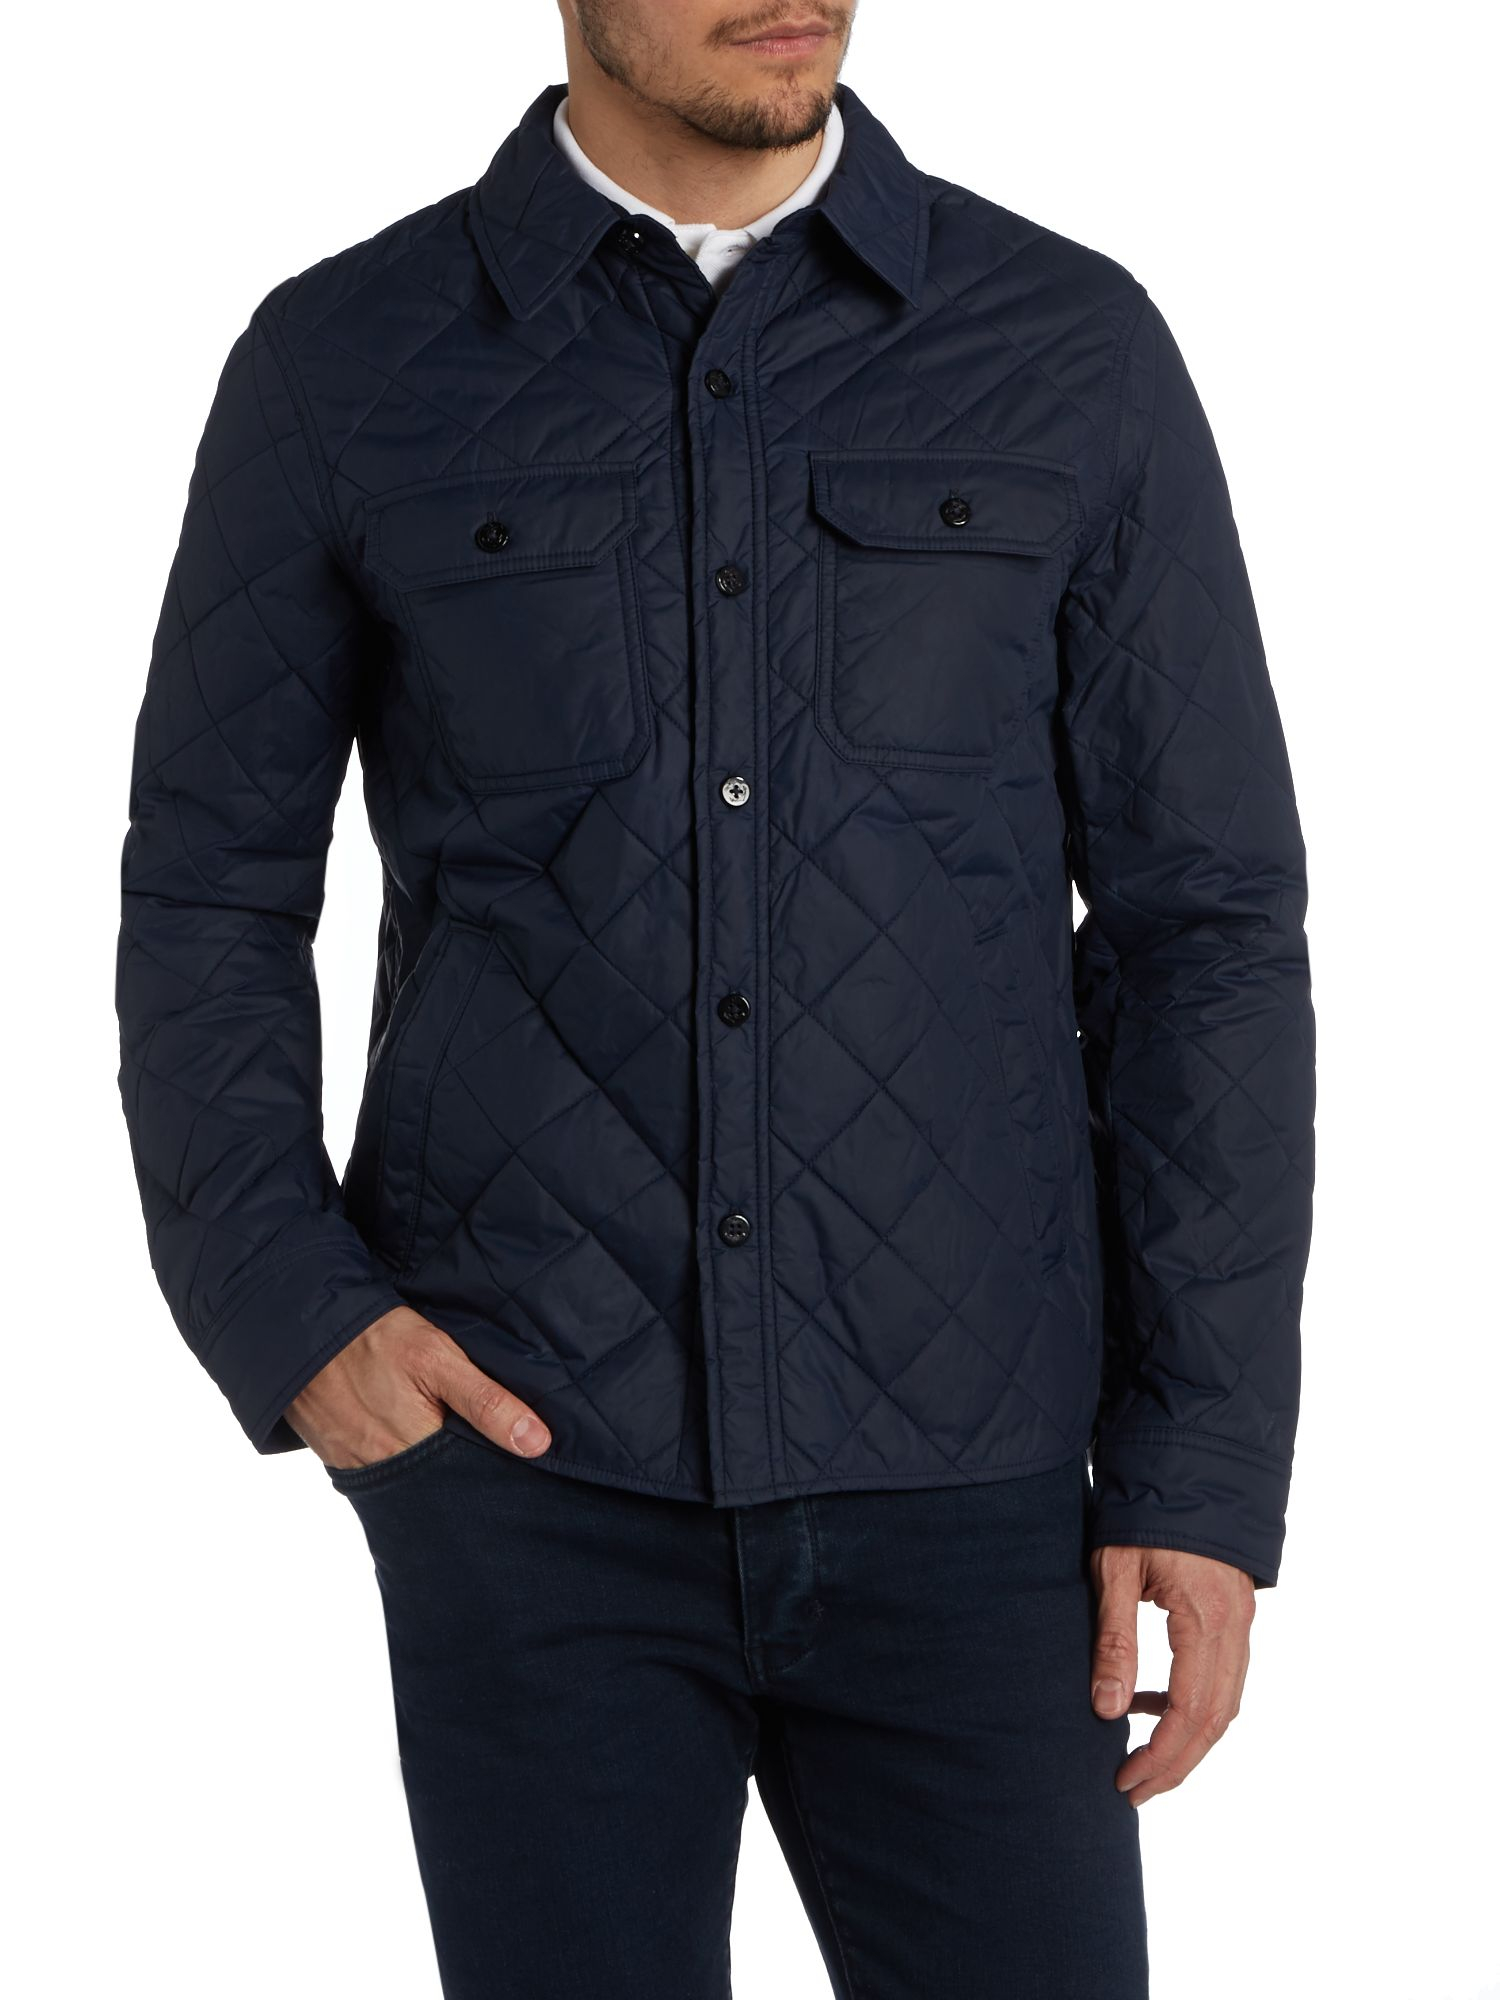 Polo ralph lauren quilted shirt jacket in blue for men for Polo shirt with jacket